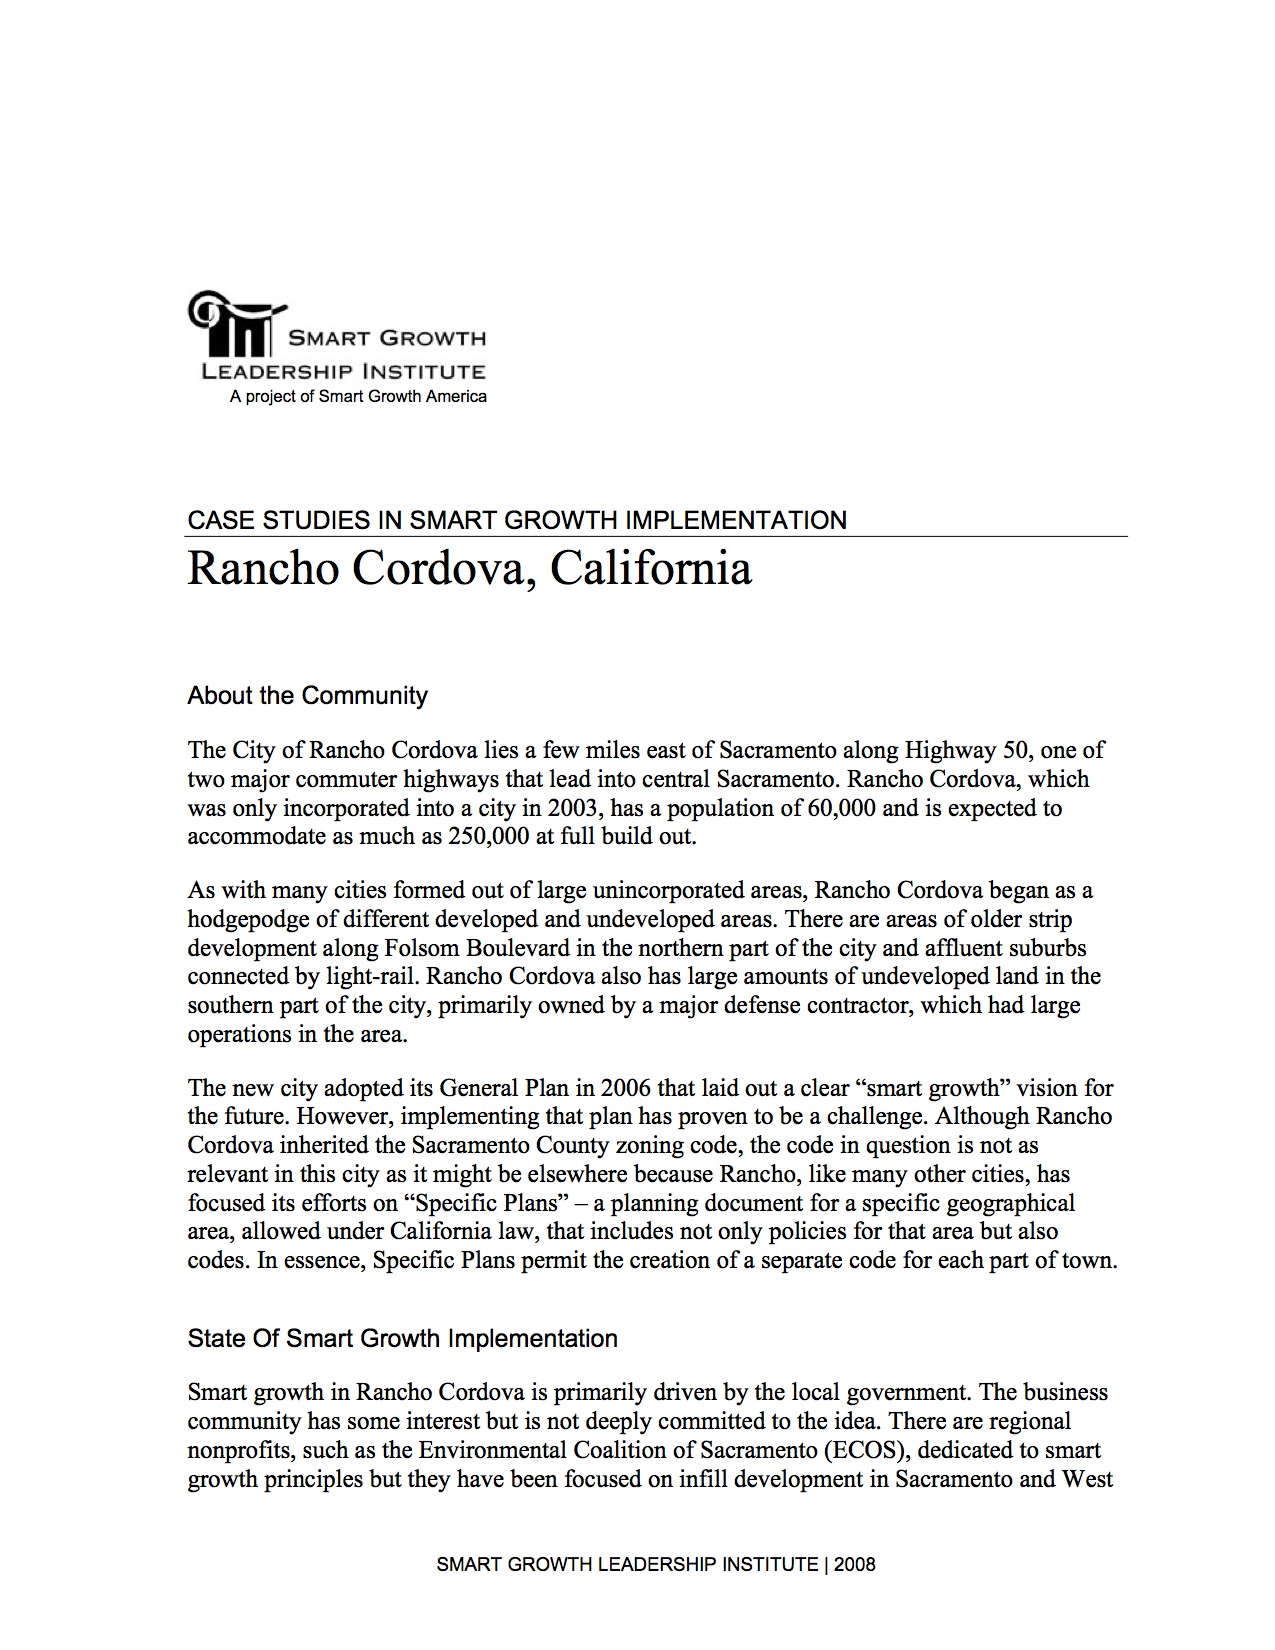 Case Studies in Smart Growth Implementation: Rancho Cordova, California